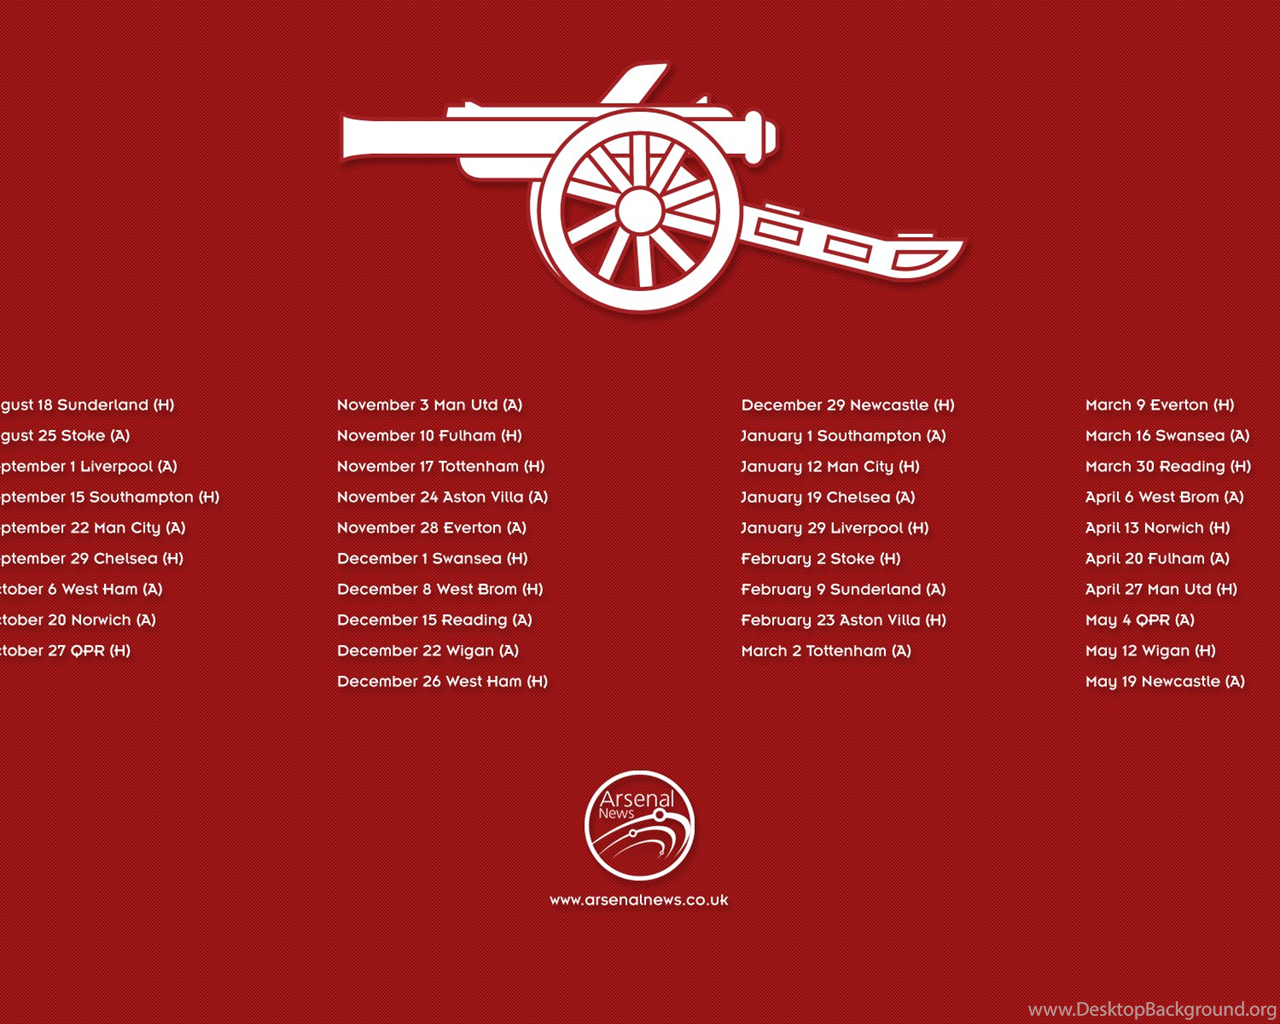 Arsenal Wallpapers Hd Wallpapers Cave Desktop Background